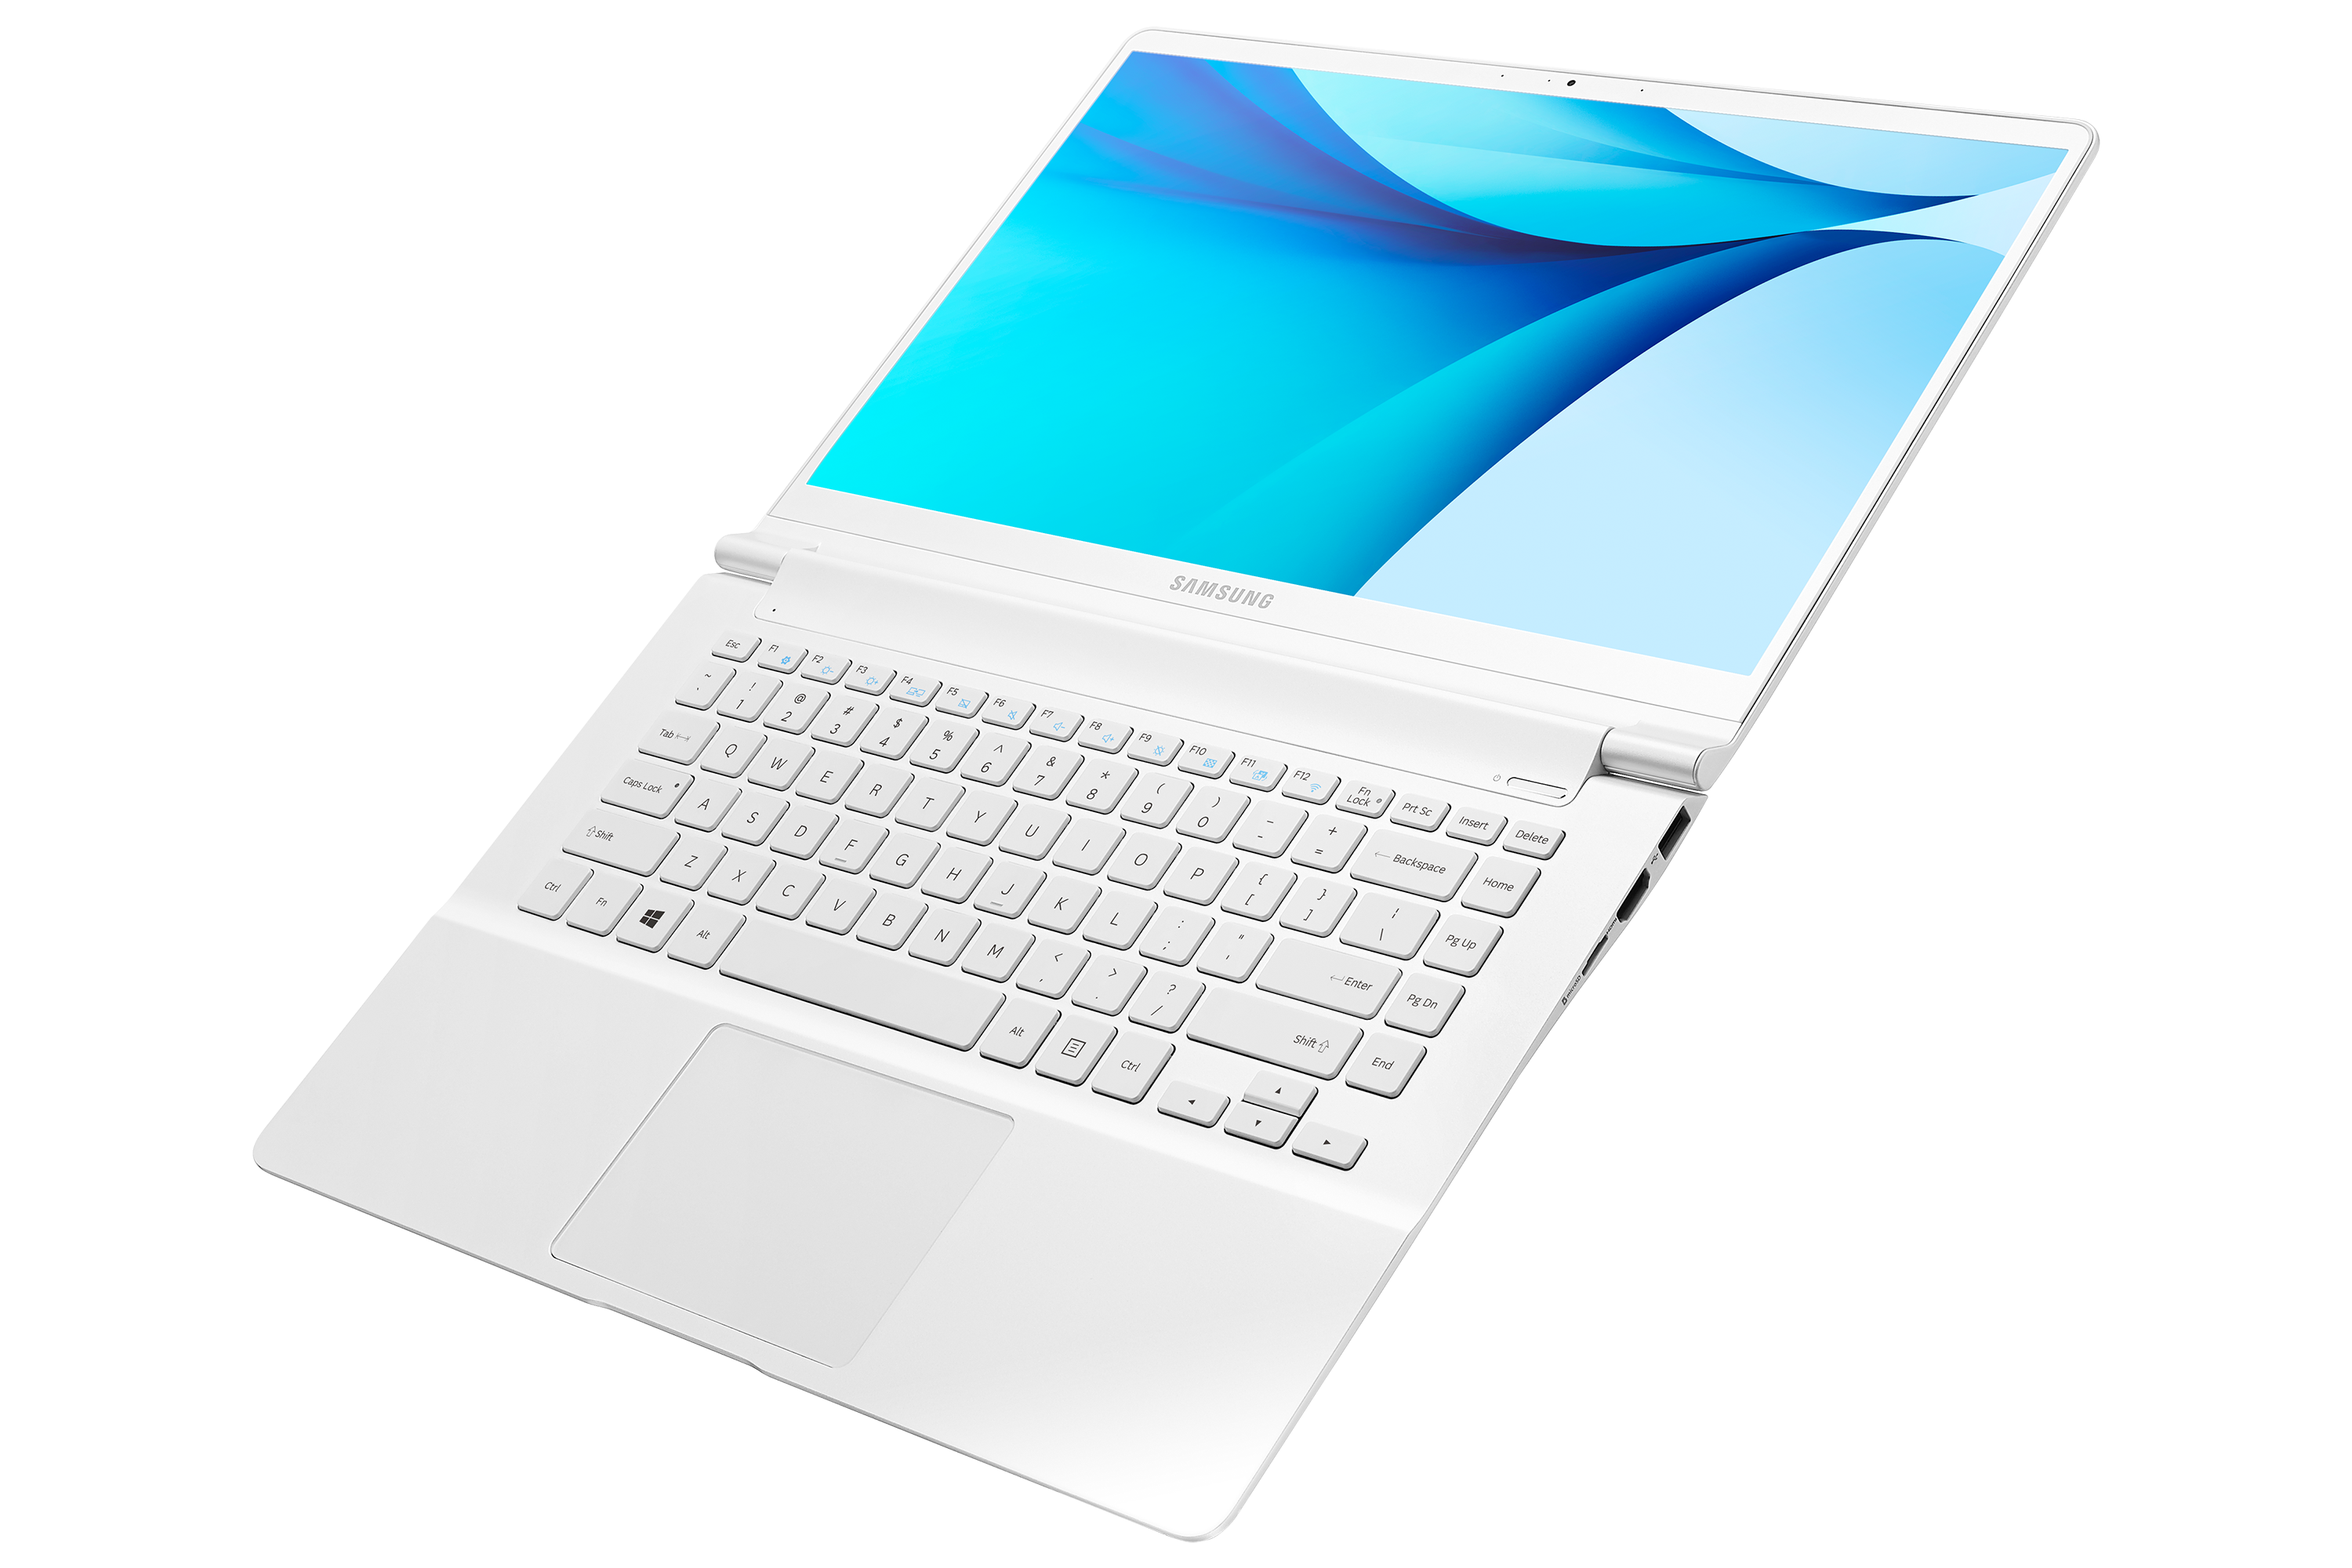 노트북 9 metal (38.1 cm)  NT900X5L-L34M Core™ i3 / 256 GB SSD